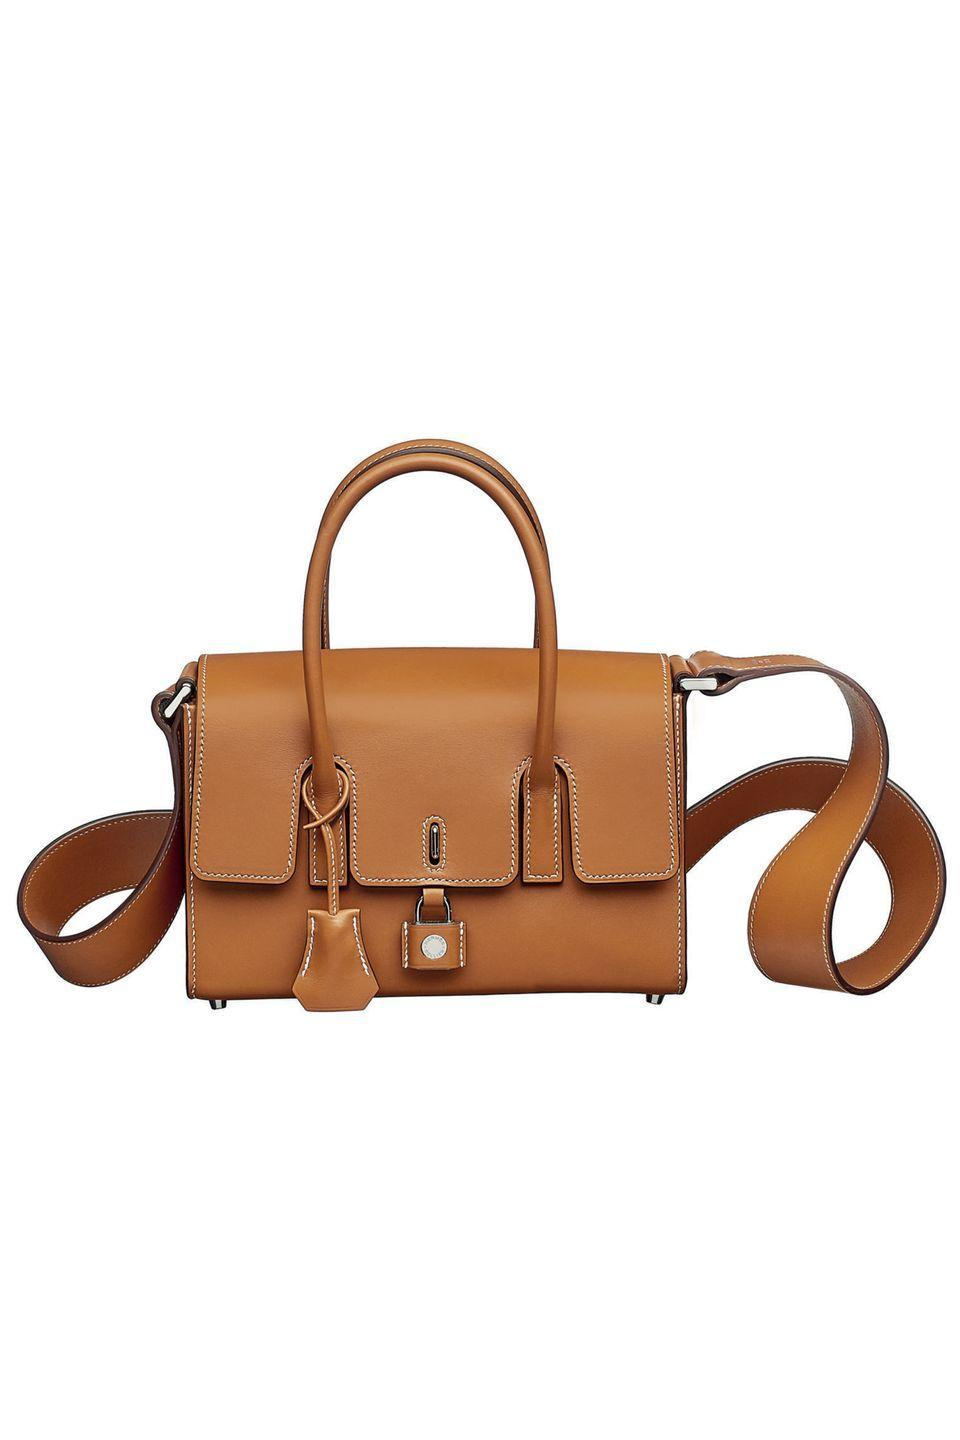 "<p>You can't go wrong with choosing a classic like a Birkin or Kelly, but the New Drag is a solid Hermès alternative with just as much staying power. Reminiscent of the house's original Drag bag designed by Robert Dumas in the 1960s, this version has been updated in supple camel-colored leather and a lock detail on the front. </p><p><em>Hermès, $9,550; hermes.com</em></p><p><a class=""link rapid-noclick-resp"" href=""https://www.hermes.com/us/en/"" rel=""nofollow noopener"" target=""_blank"" data-ylk=""slk:SHOP NOW"">SHOP NOW</a></p>"